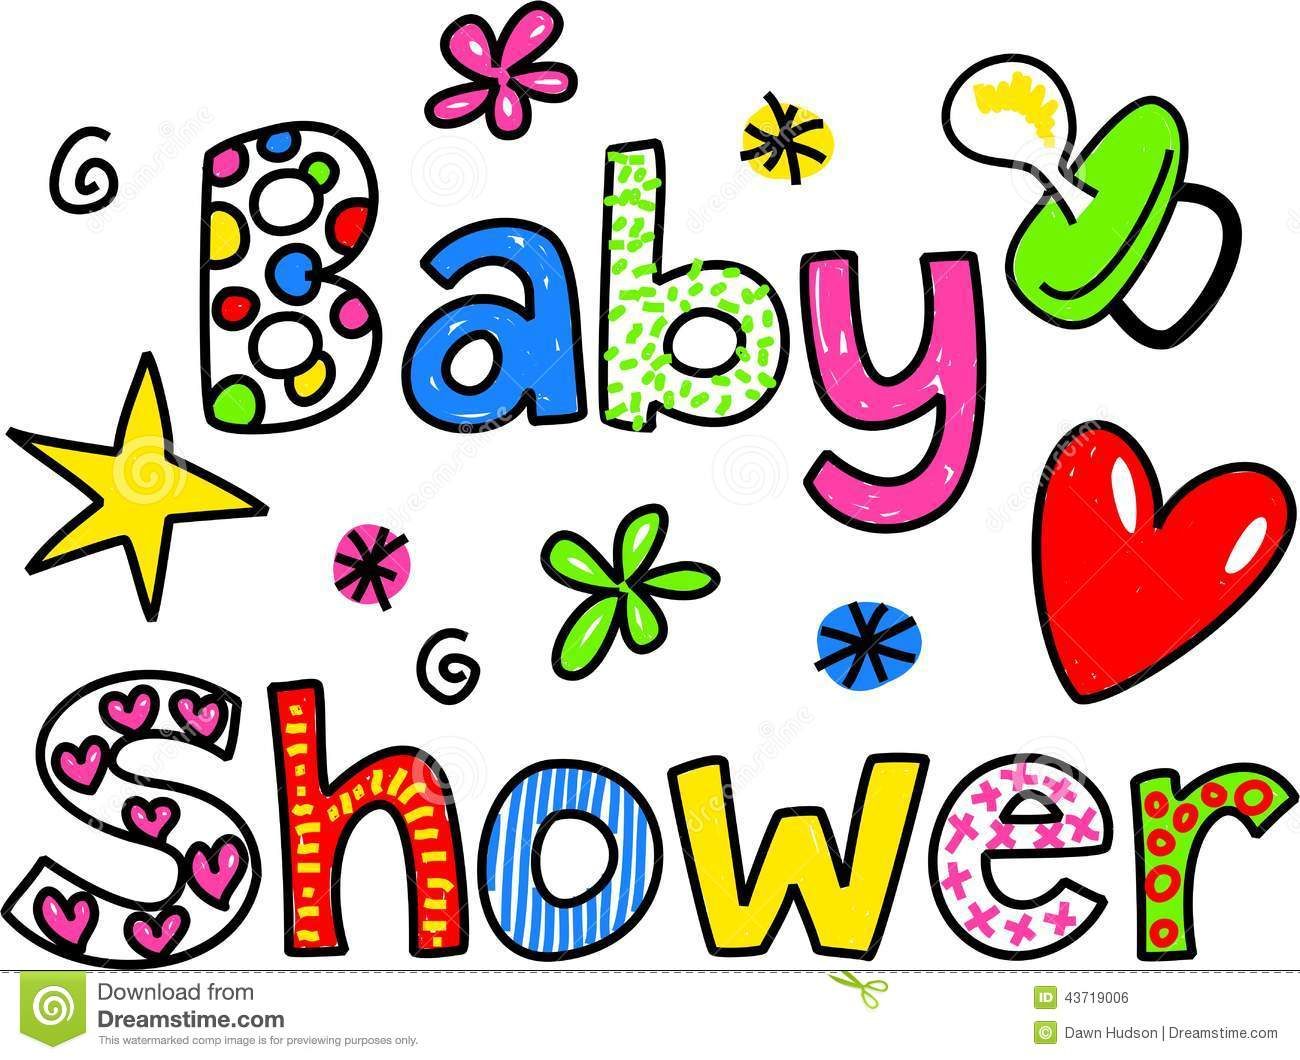 Baby Shower Cartoon Text Clipart Stock Illustration - Image: 43719006